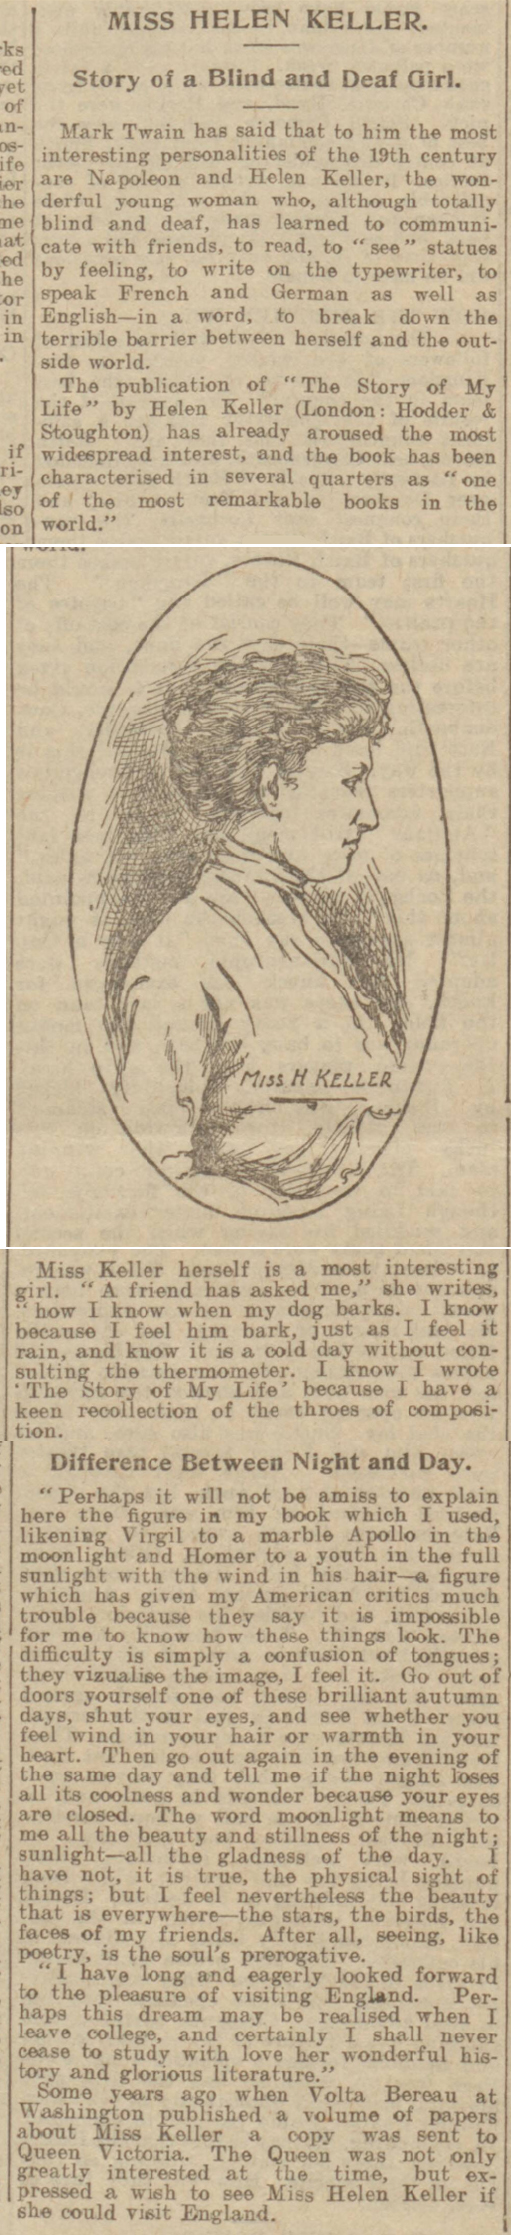 historical newspaper report about helen keller